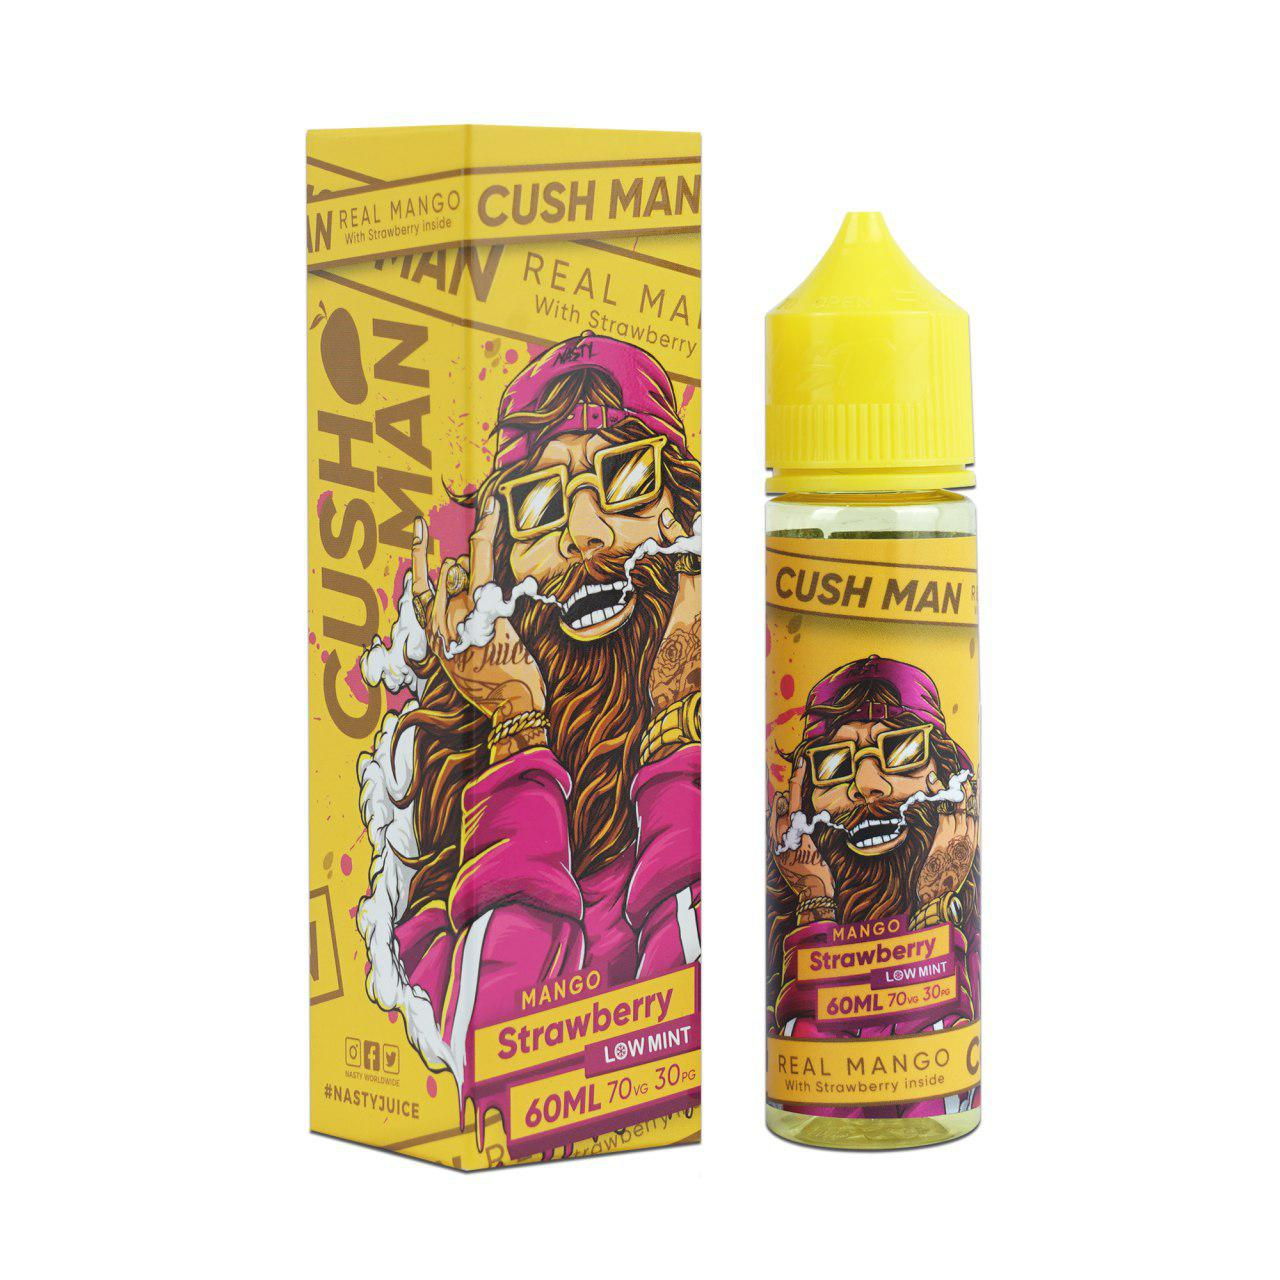 Nasty Juice Cash Man - Mango Strawberry (Low Mint) - 437 VAPES